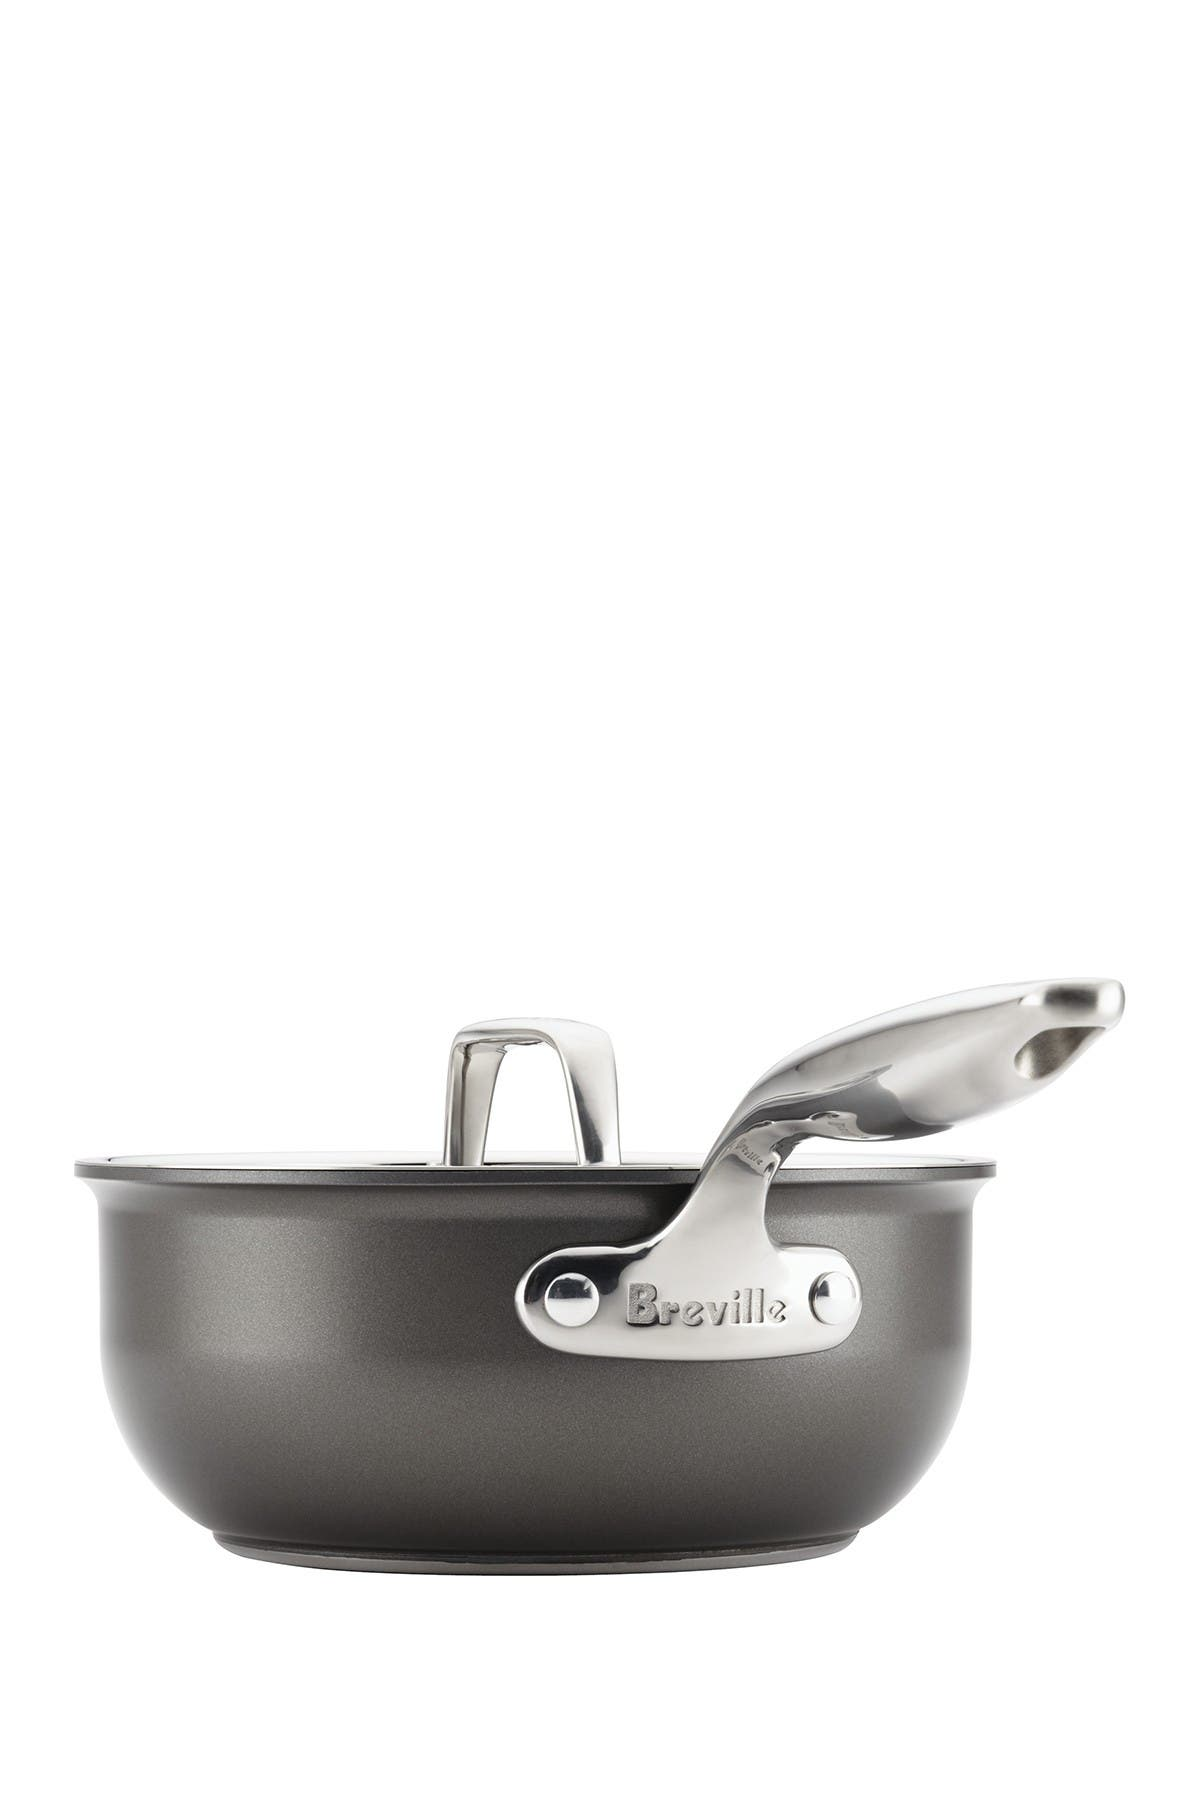 Image of Breville Thermo Pro Hard Anodized  2.5 Quart Covered Saucier